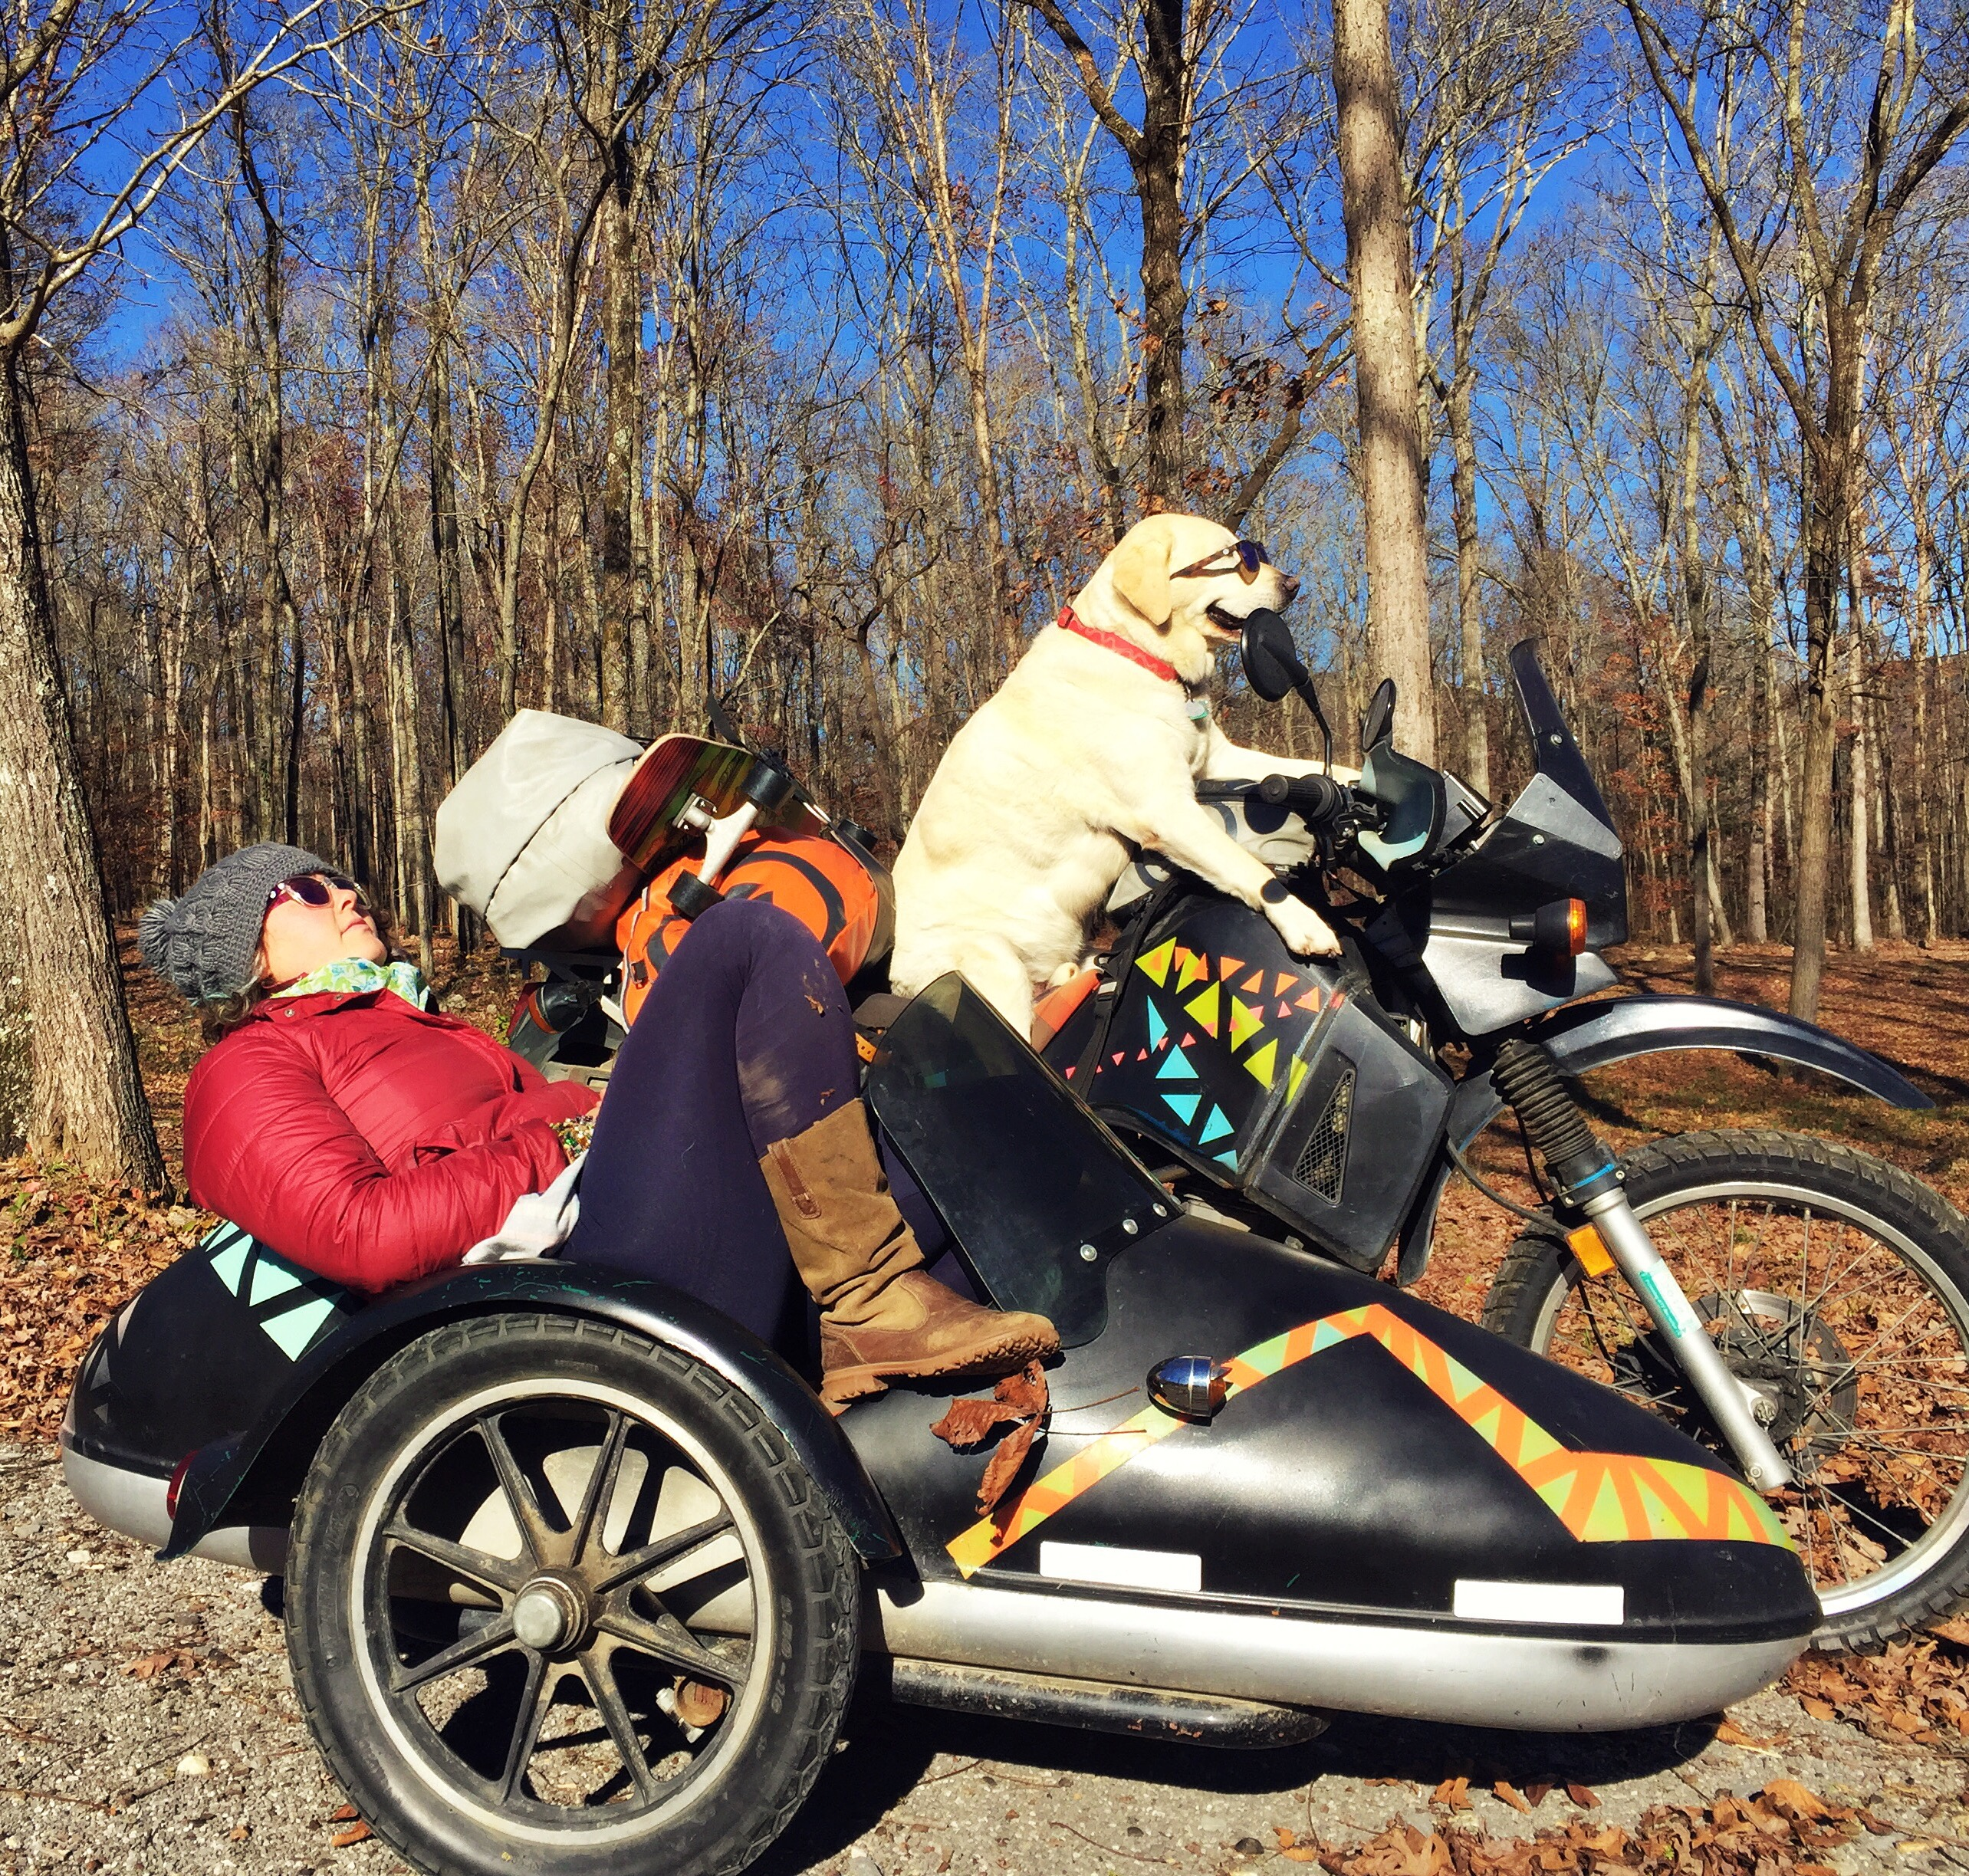 Motorcycle Adventure Challenge: Operation Moto Dog